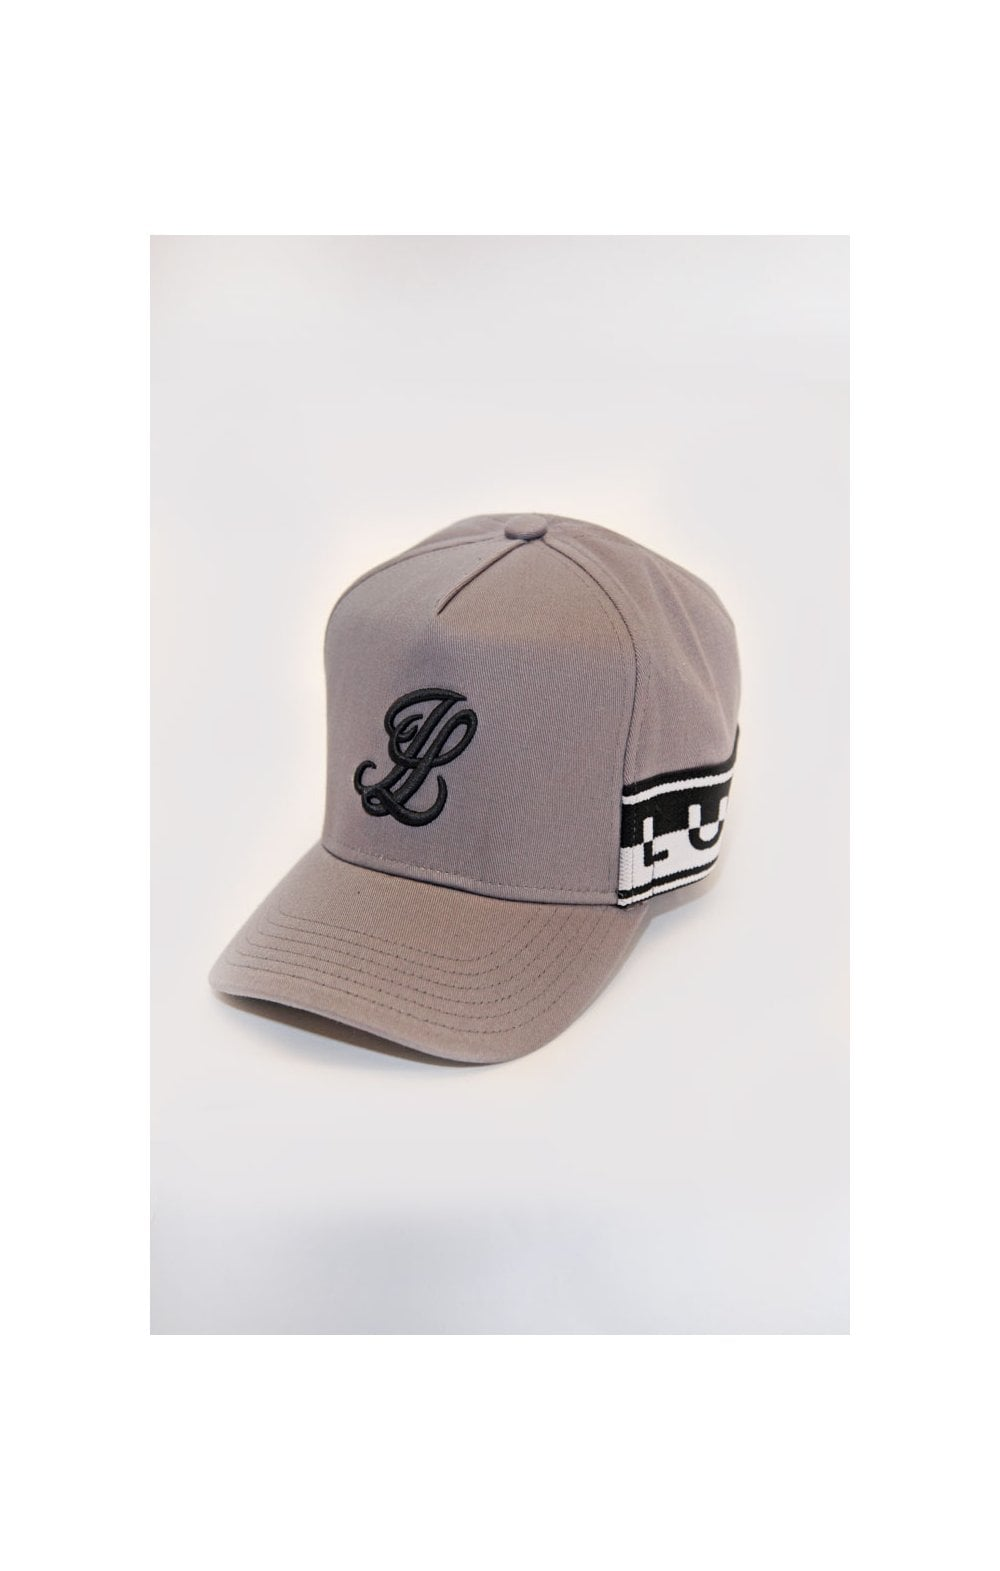 Illusive London Taped Trucker - Grey & Black